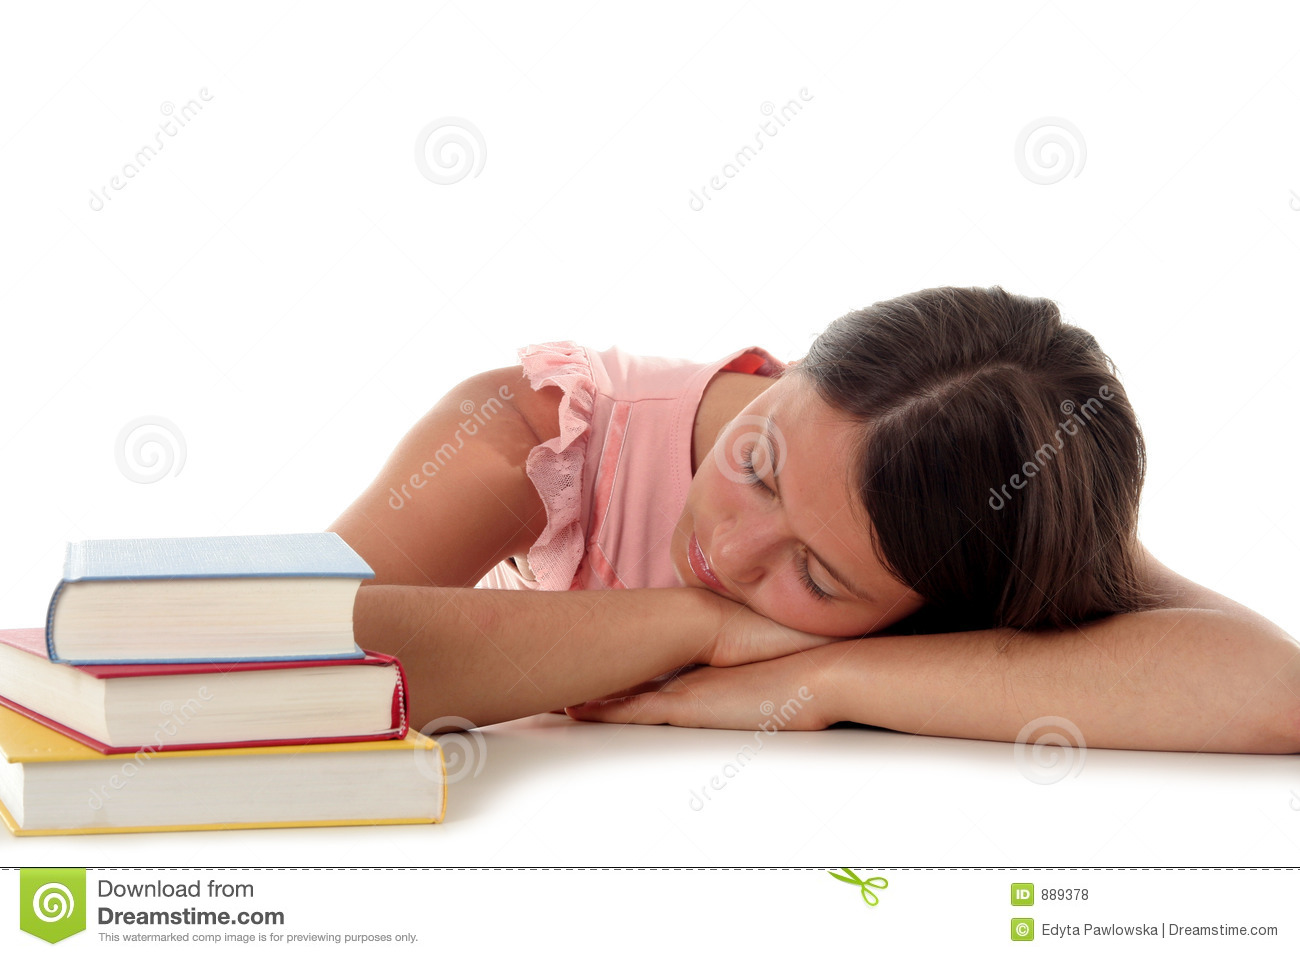 Picture Of Person Sleeping At Desk.